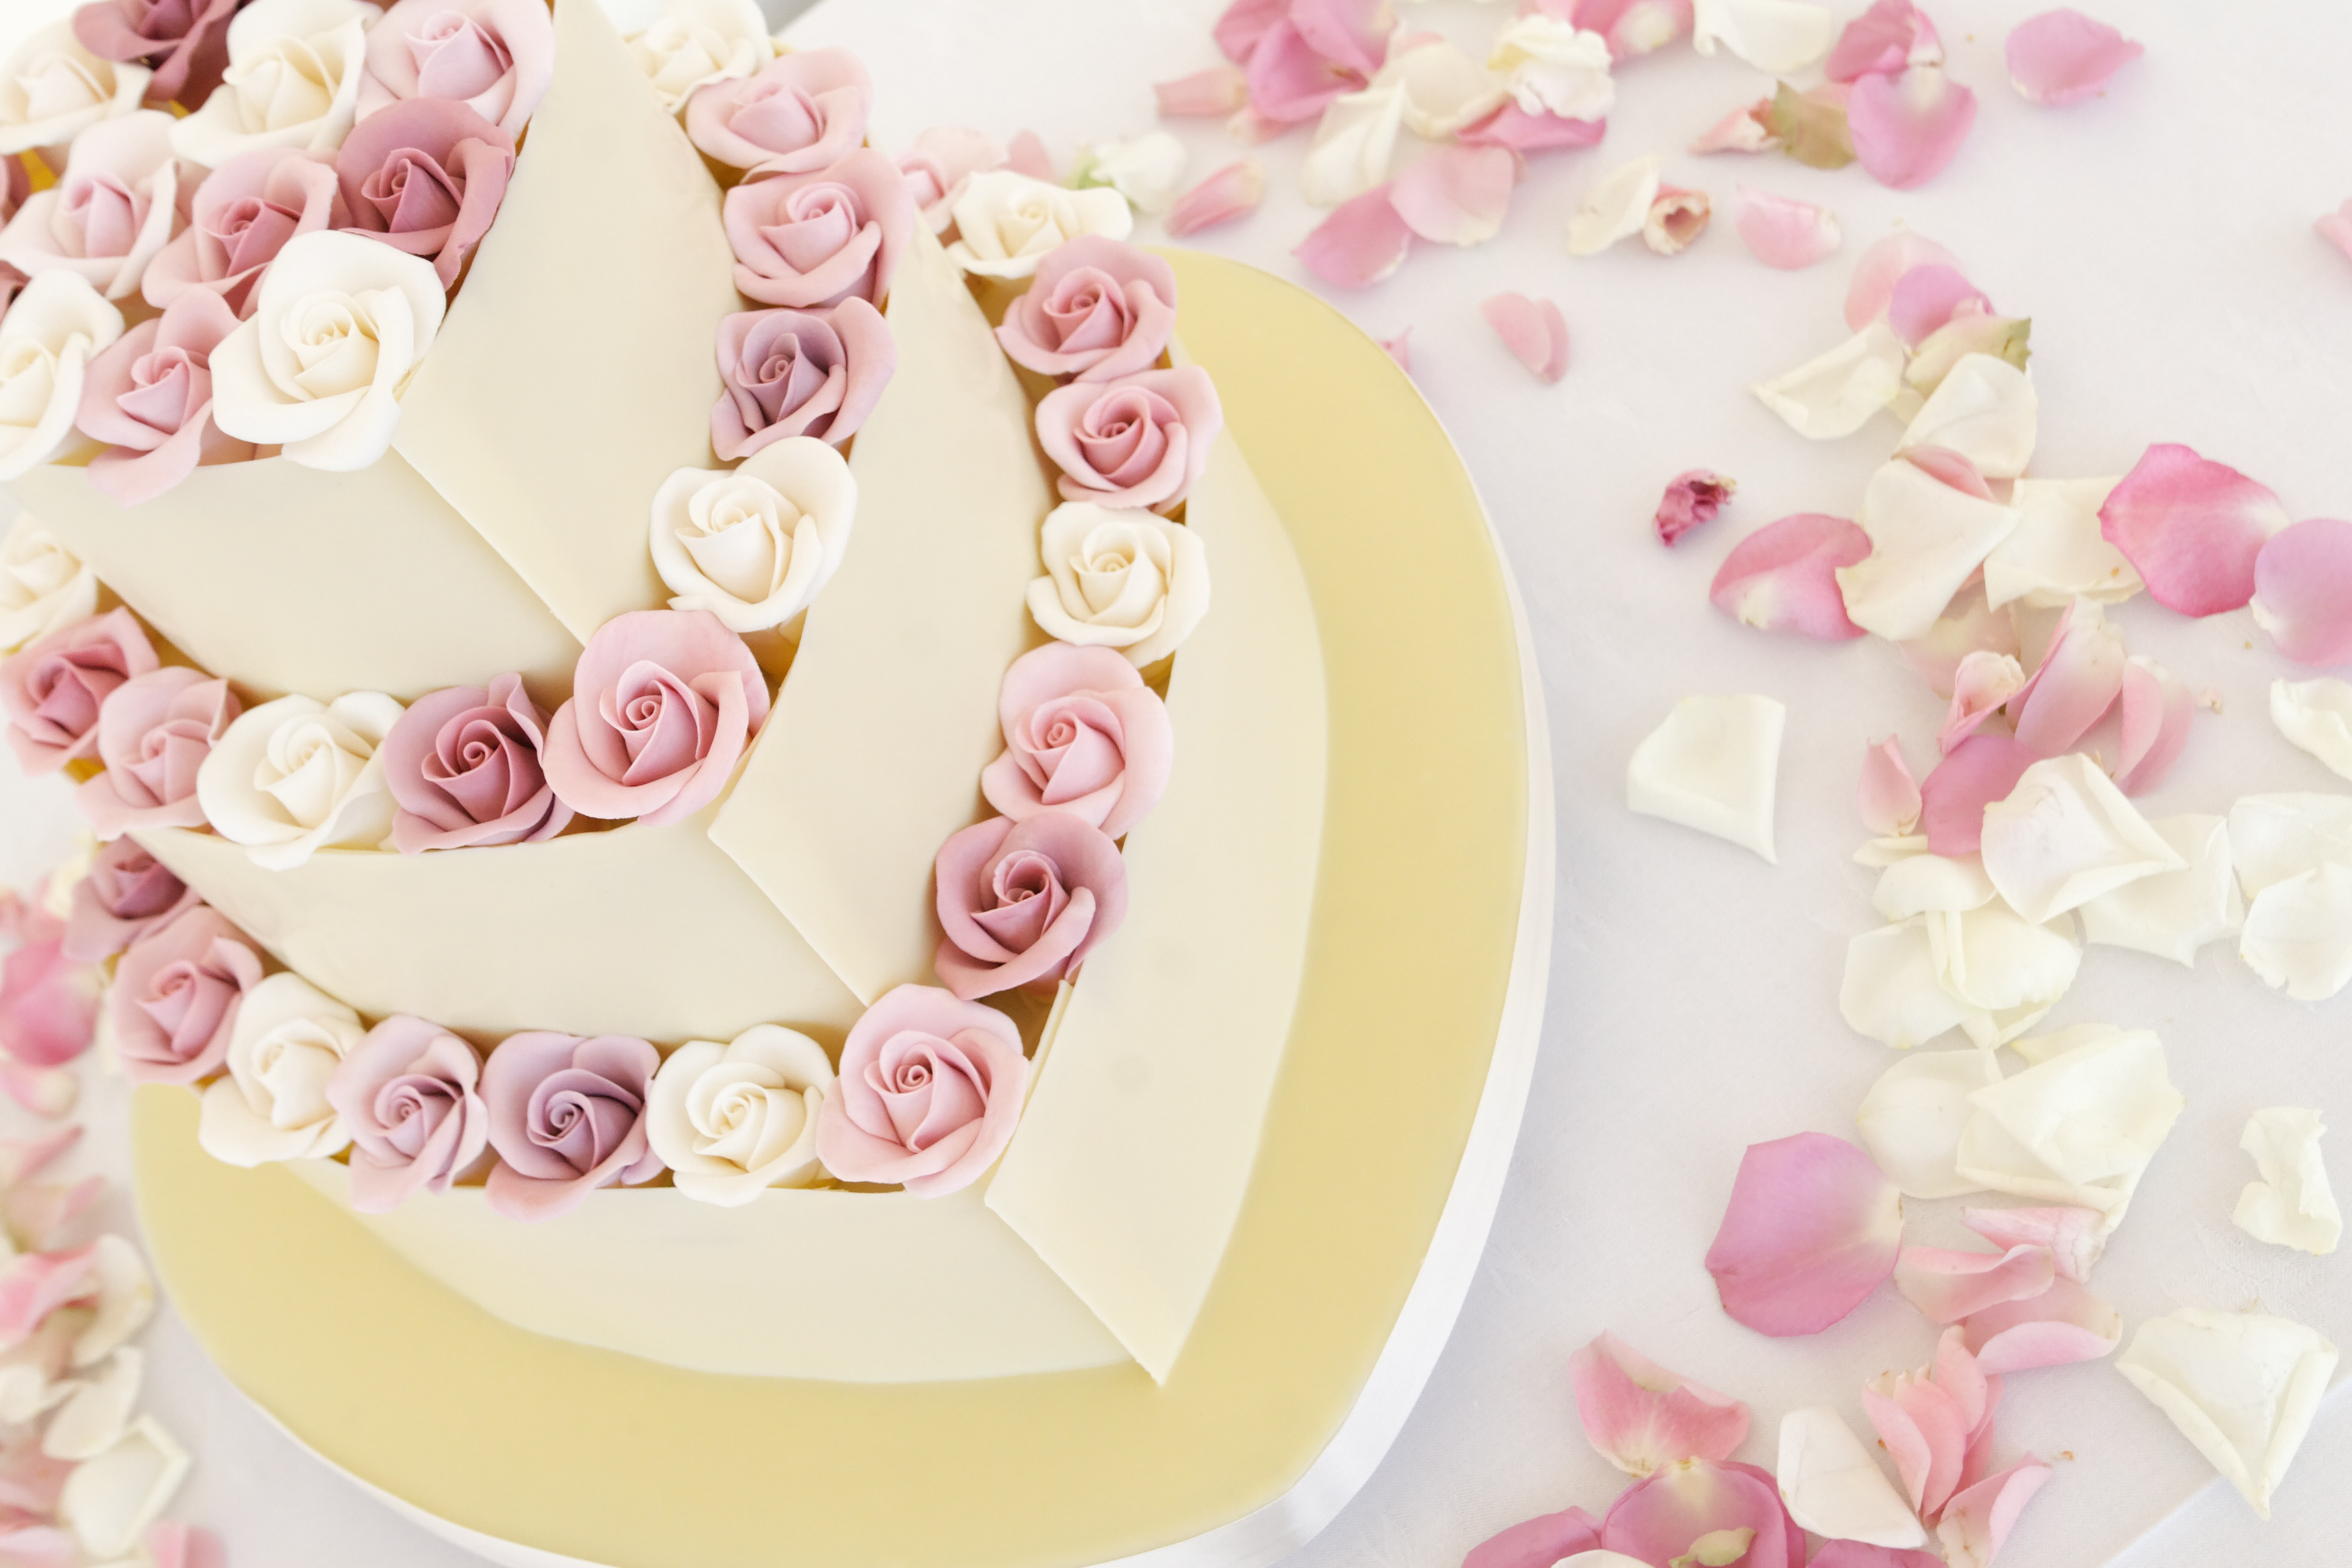 Coolwater rose chocolate cake